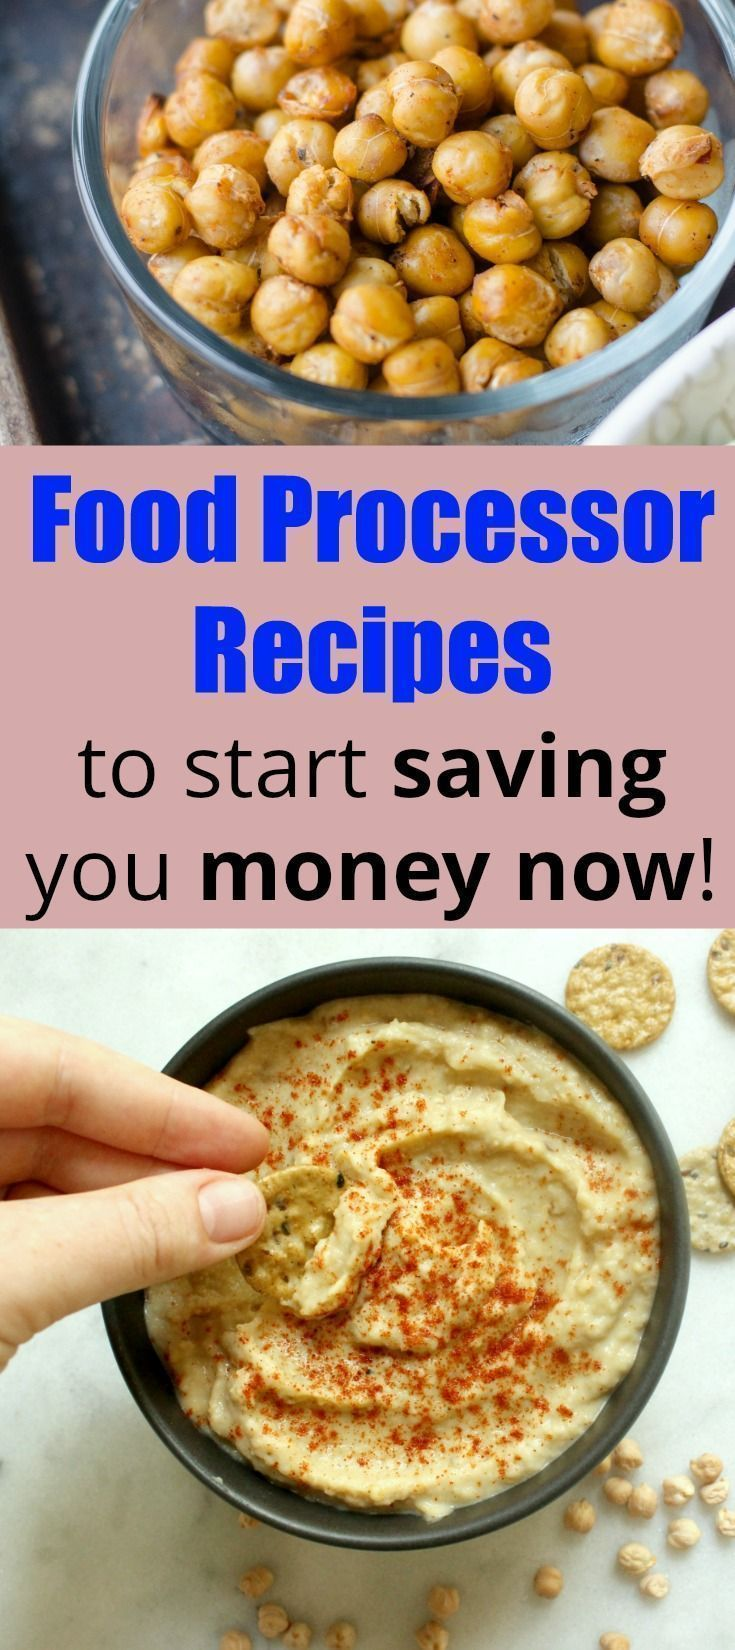 8 Reasons To Fall In Love With Your Food Processor Food Processor Recipes Food Processor Recipes Healthy Food Processor Uses